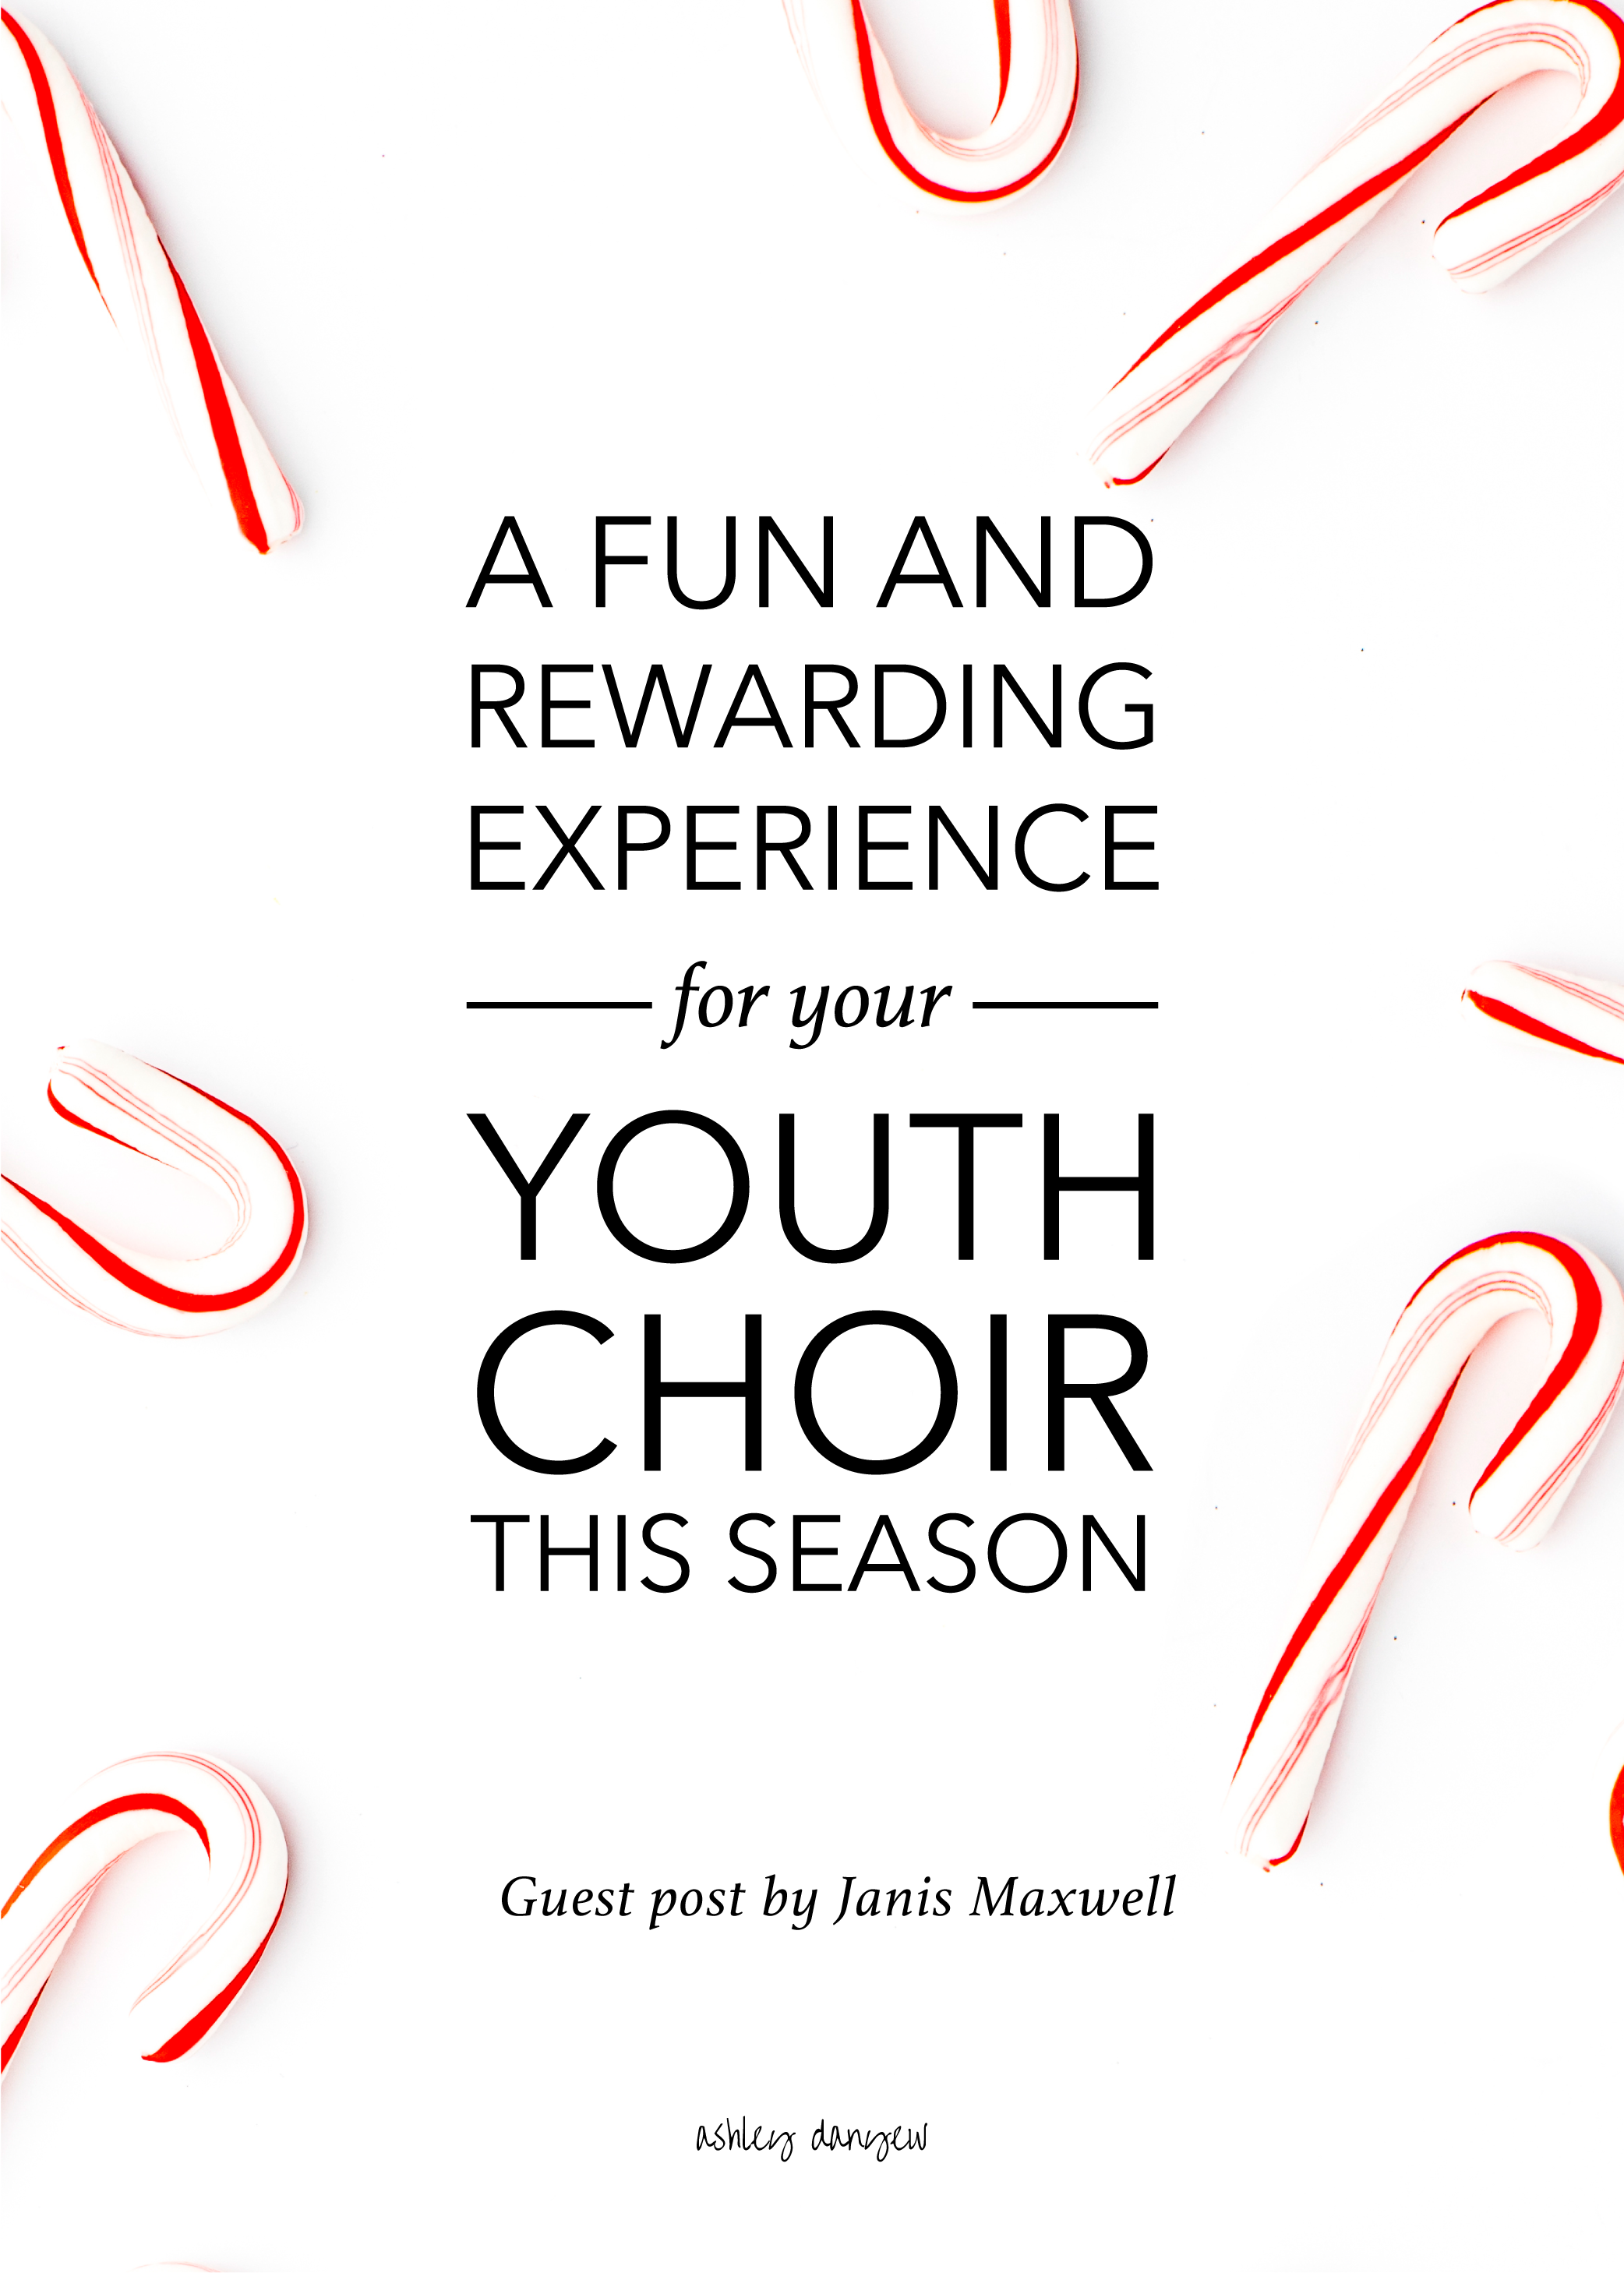 Copy of A Fun and Rewarding Experience for Your Youth Choir This Season